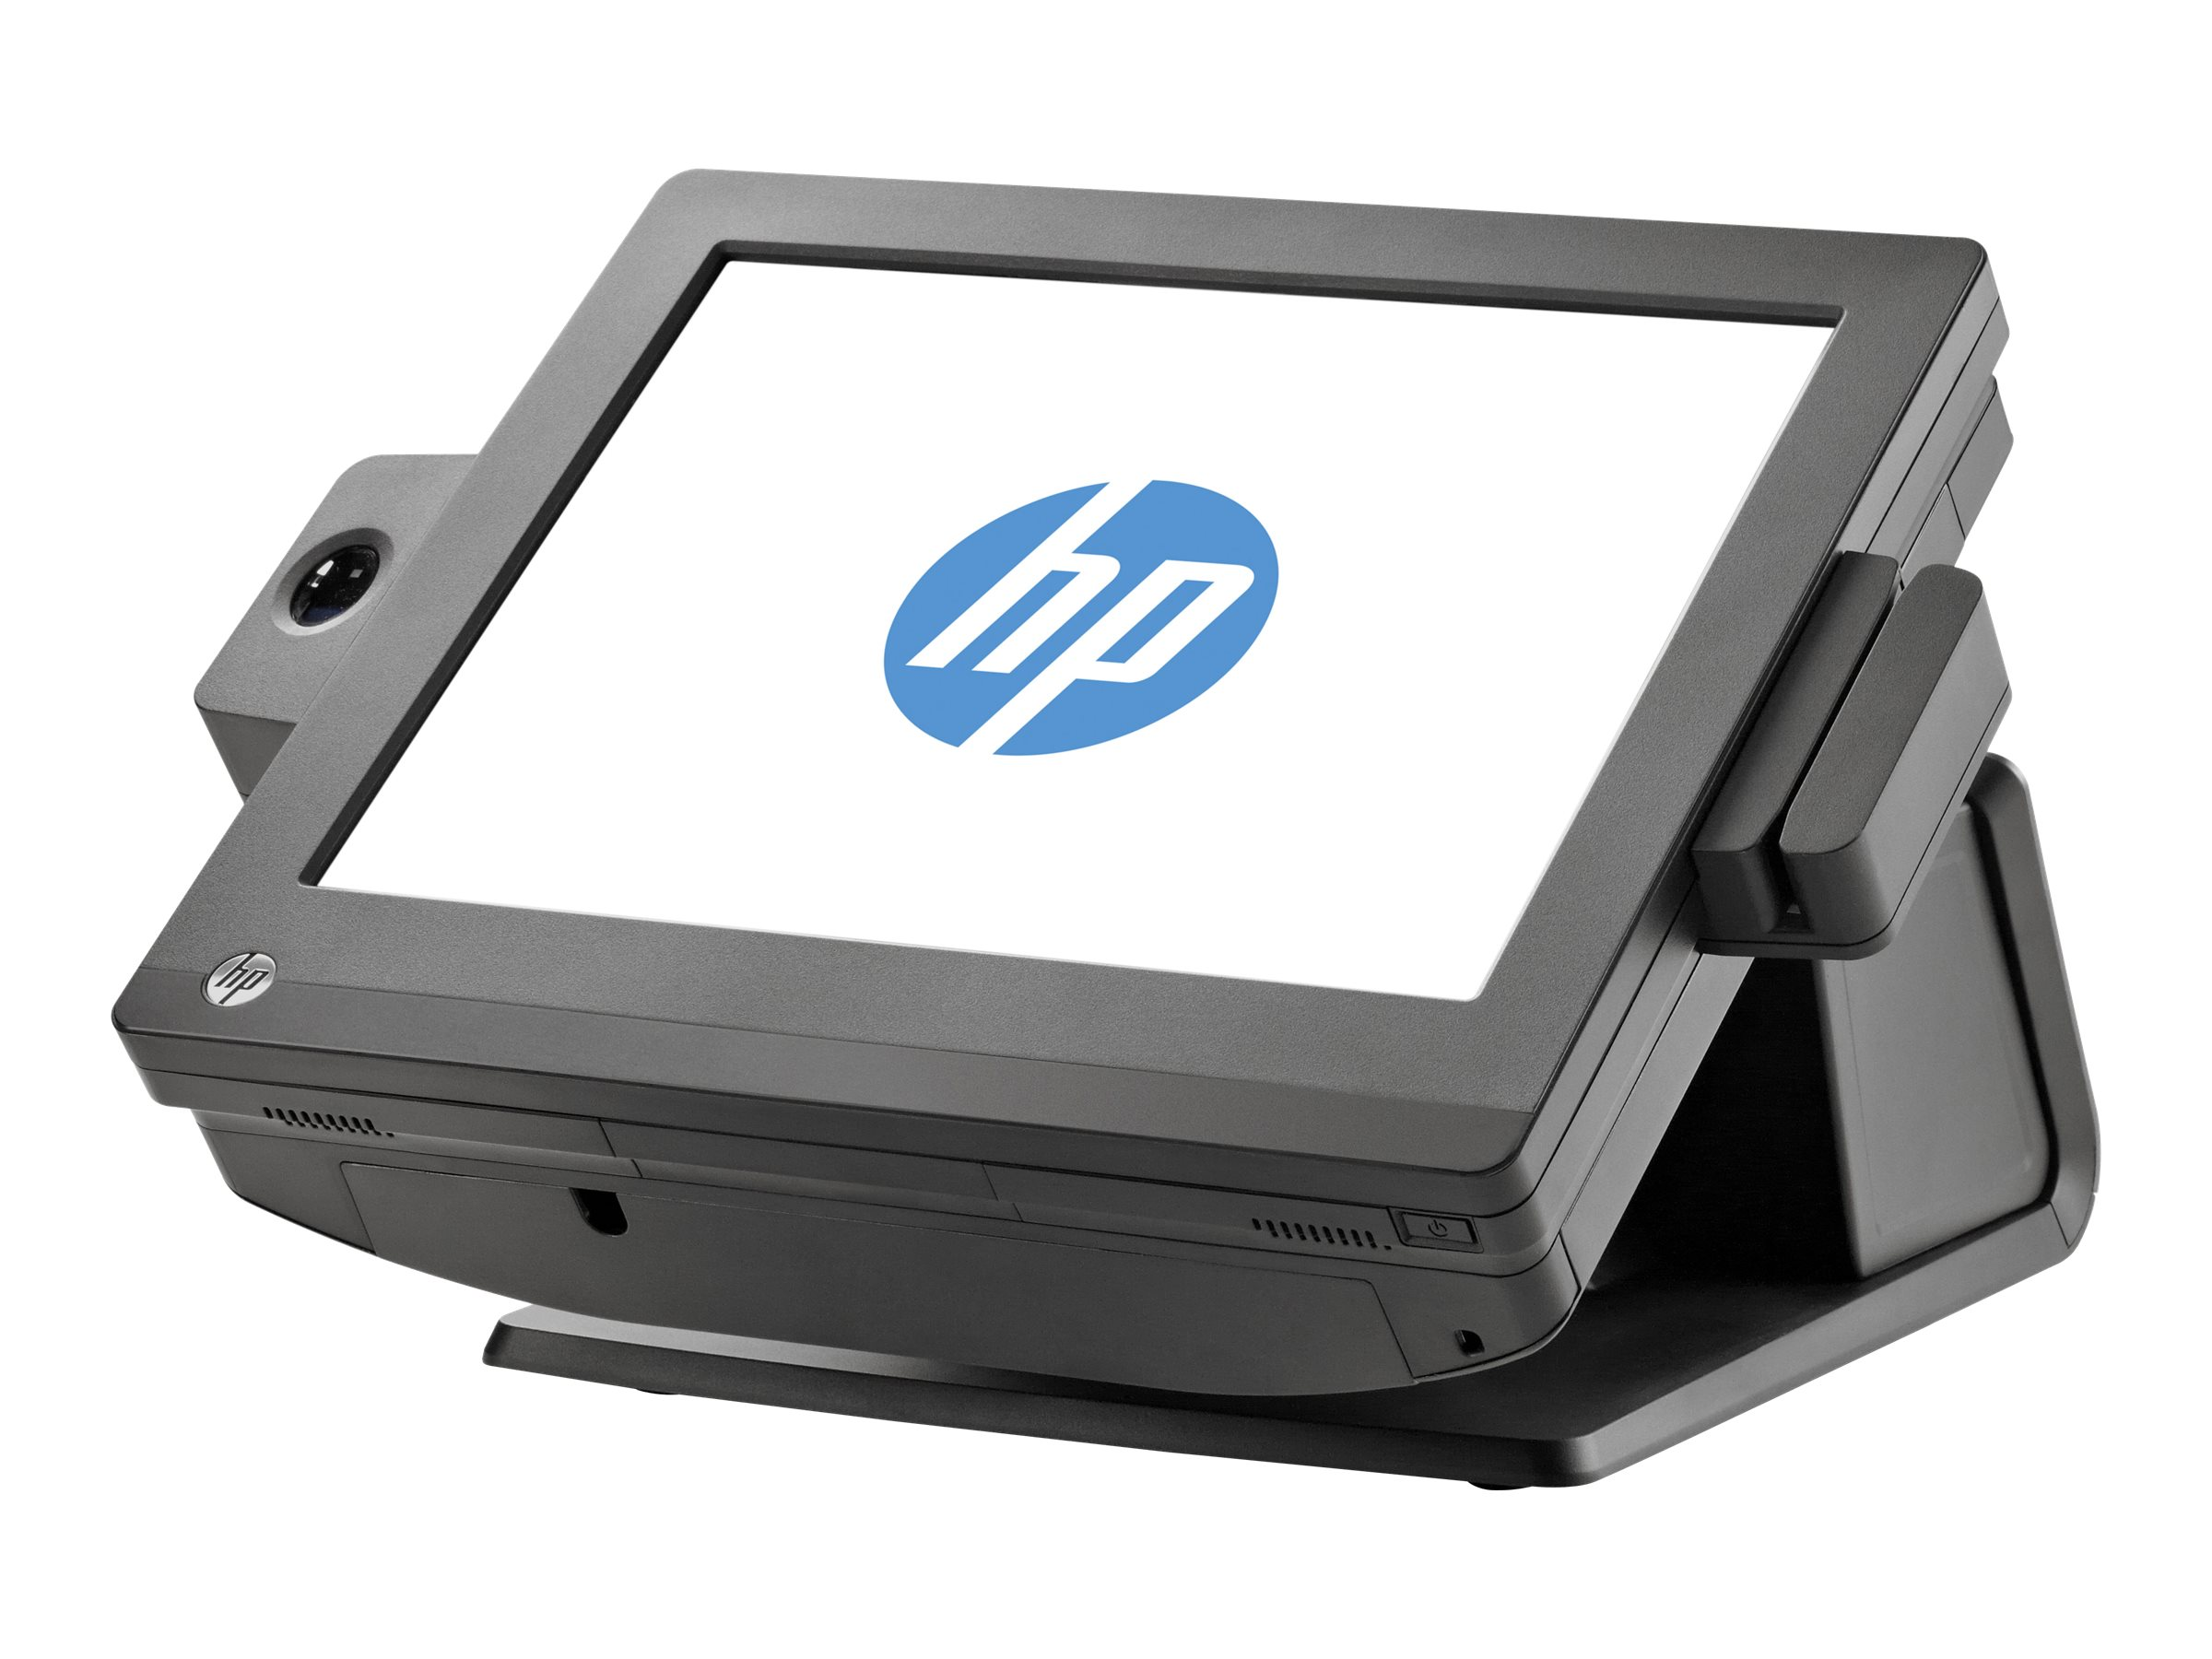 HP rp7100 POS 4GB 32GB POS Ready 7 32-bit, G3A95US#ABA, 16729541, POS/Kiosk Systems